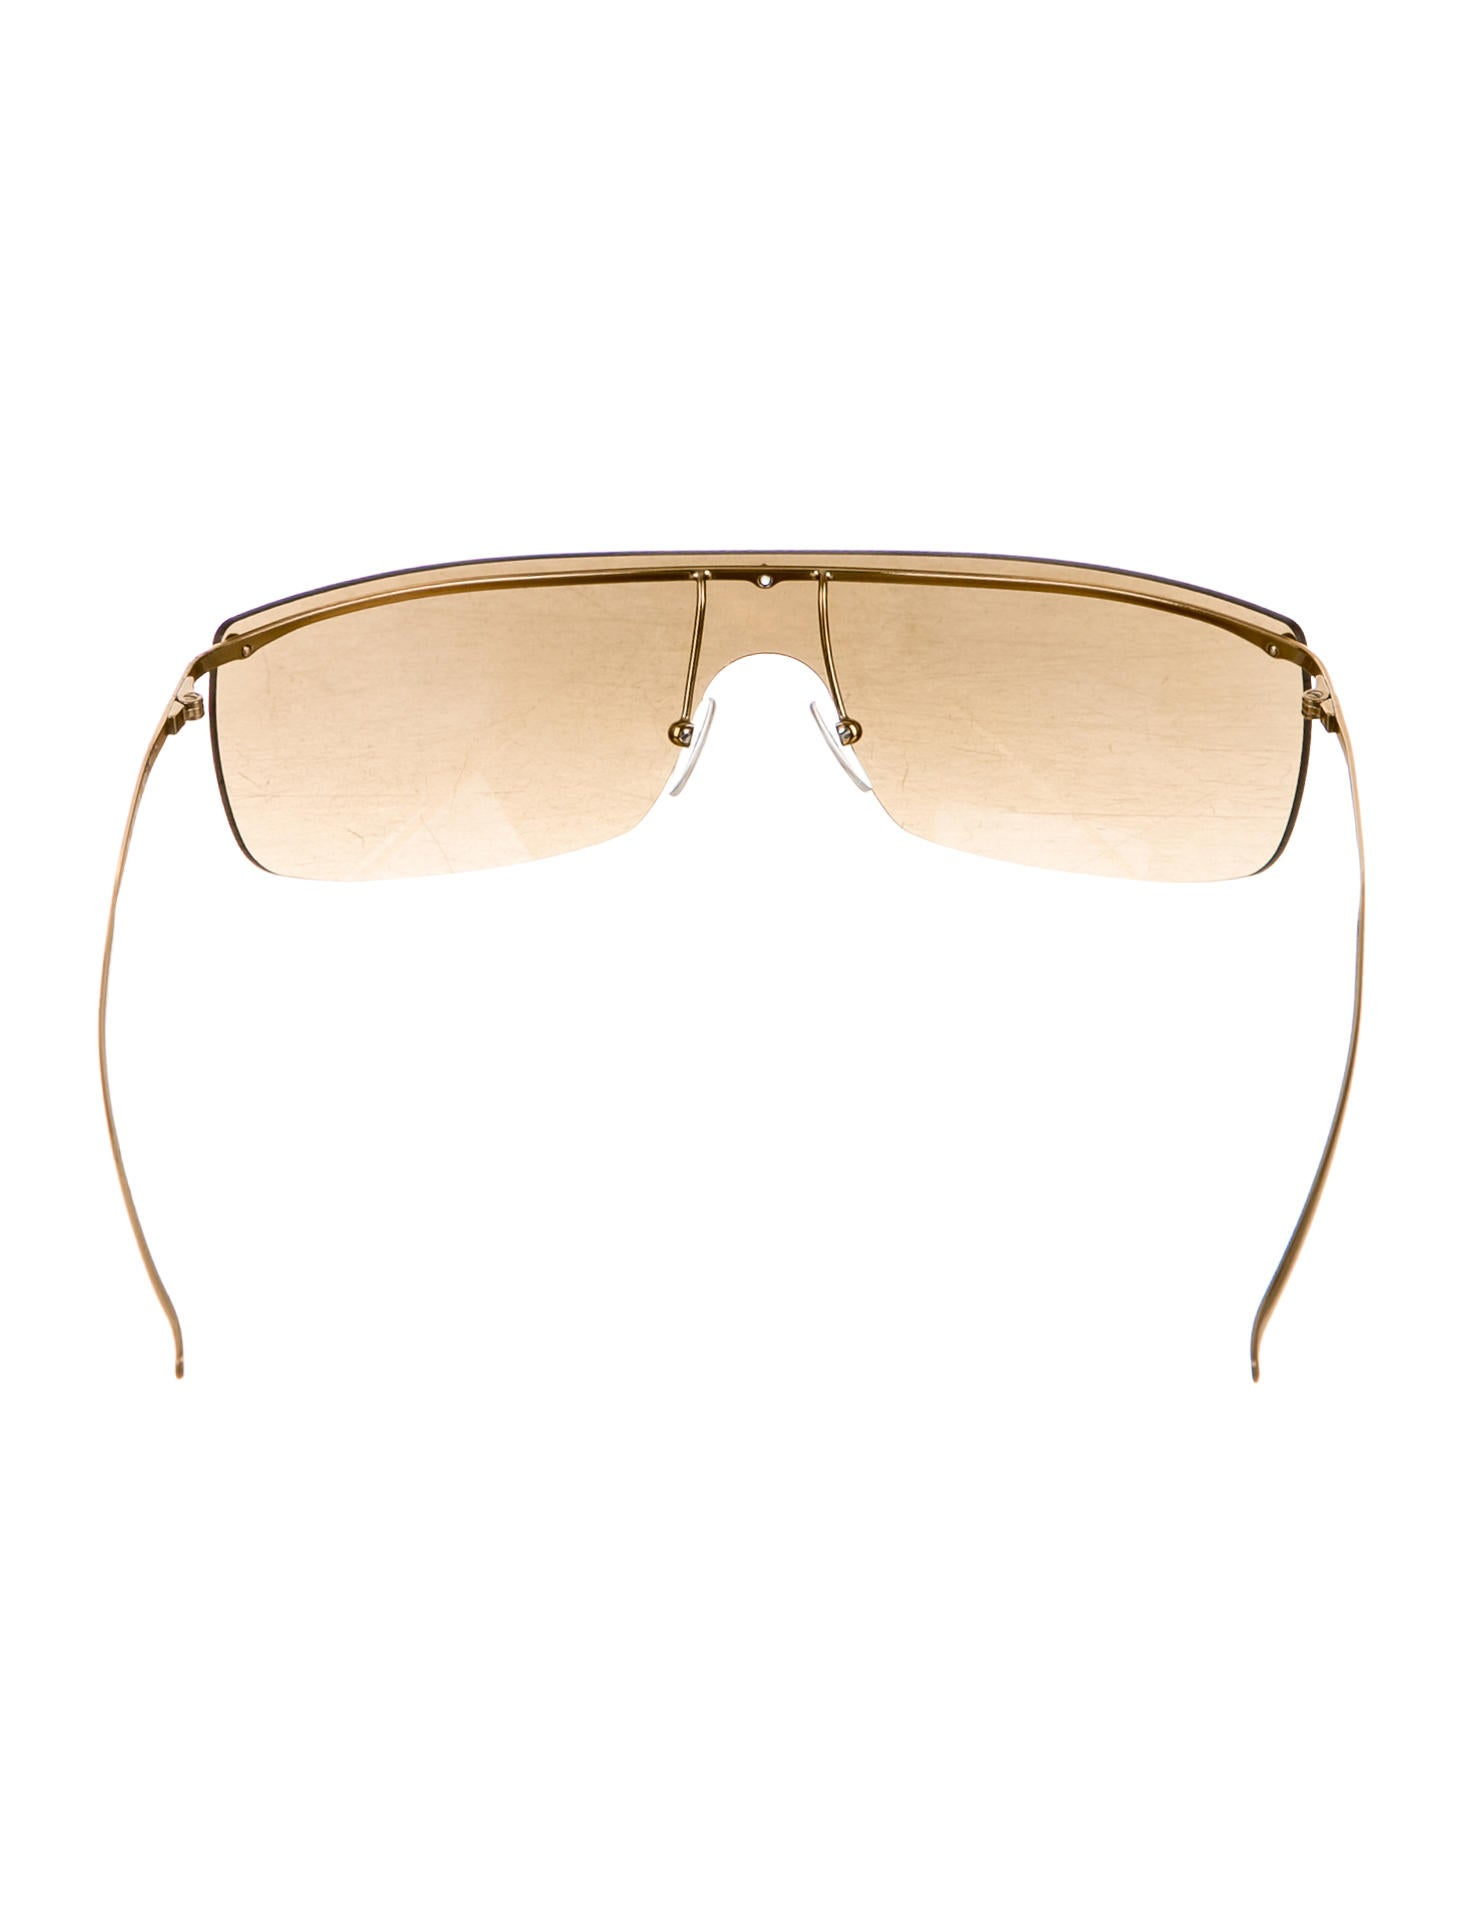 Rimless Glasses With Changeable Arms : Gucci Rimless Shield Sunglasses - Accessories - GUC136980 ...